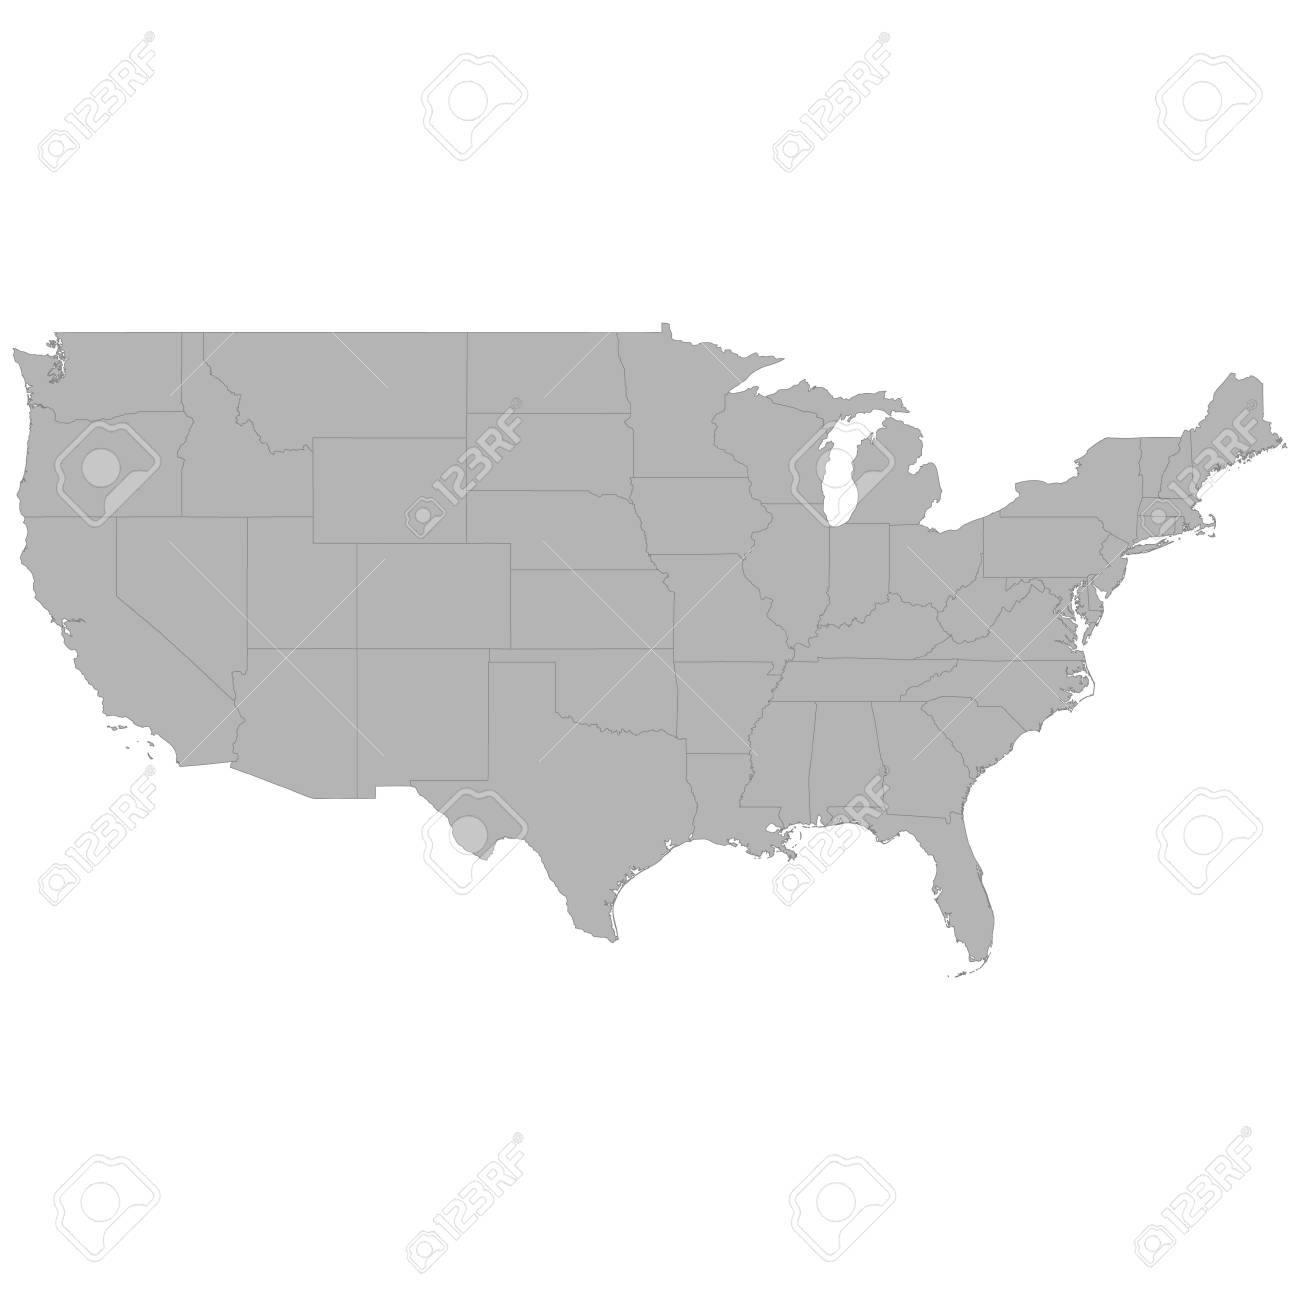 High Quality Map Of United States With Borders Of The Regions On ...